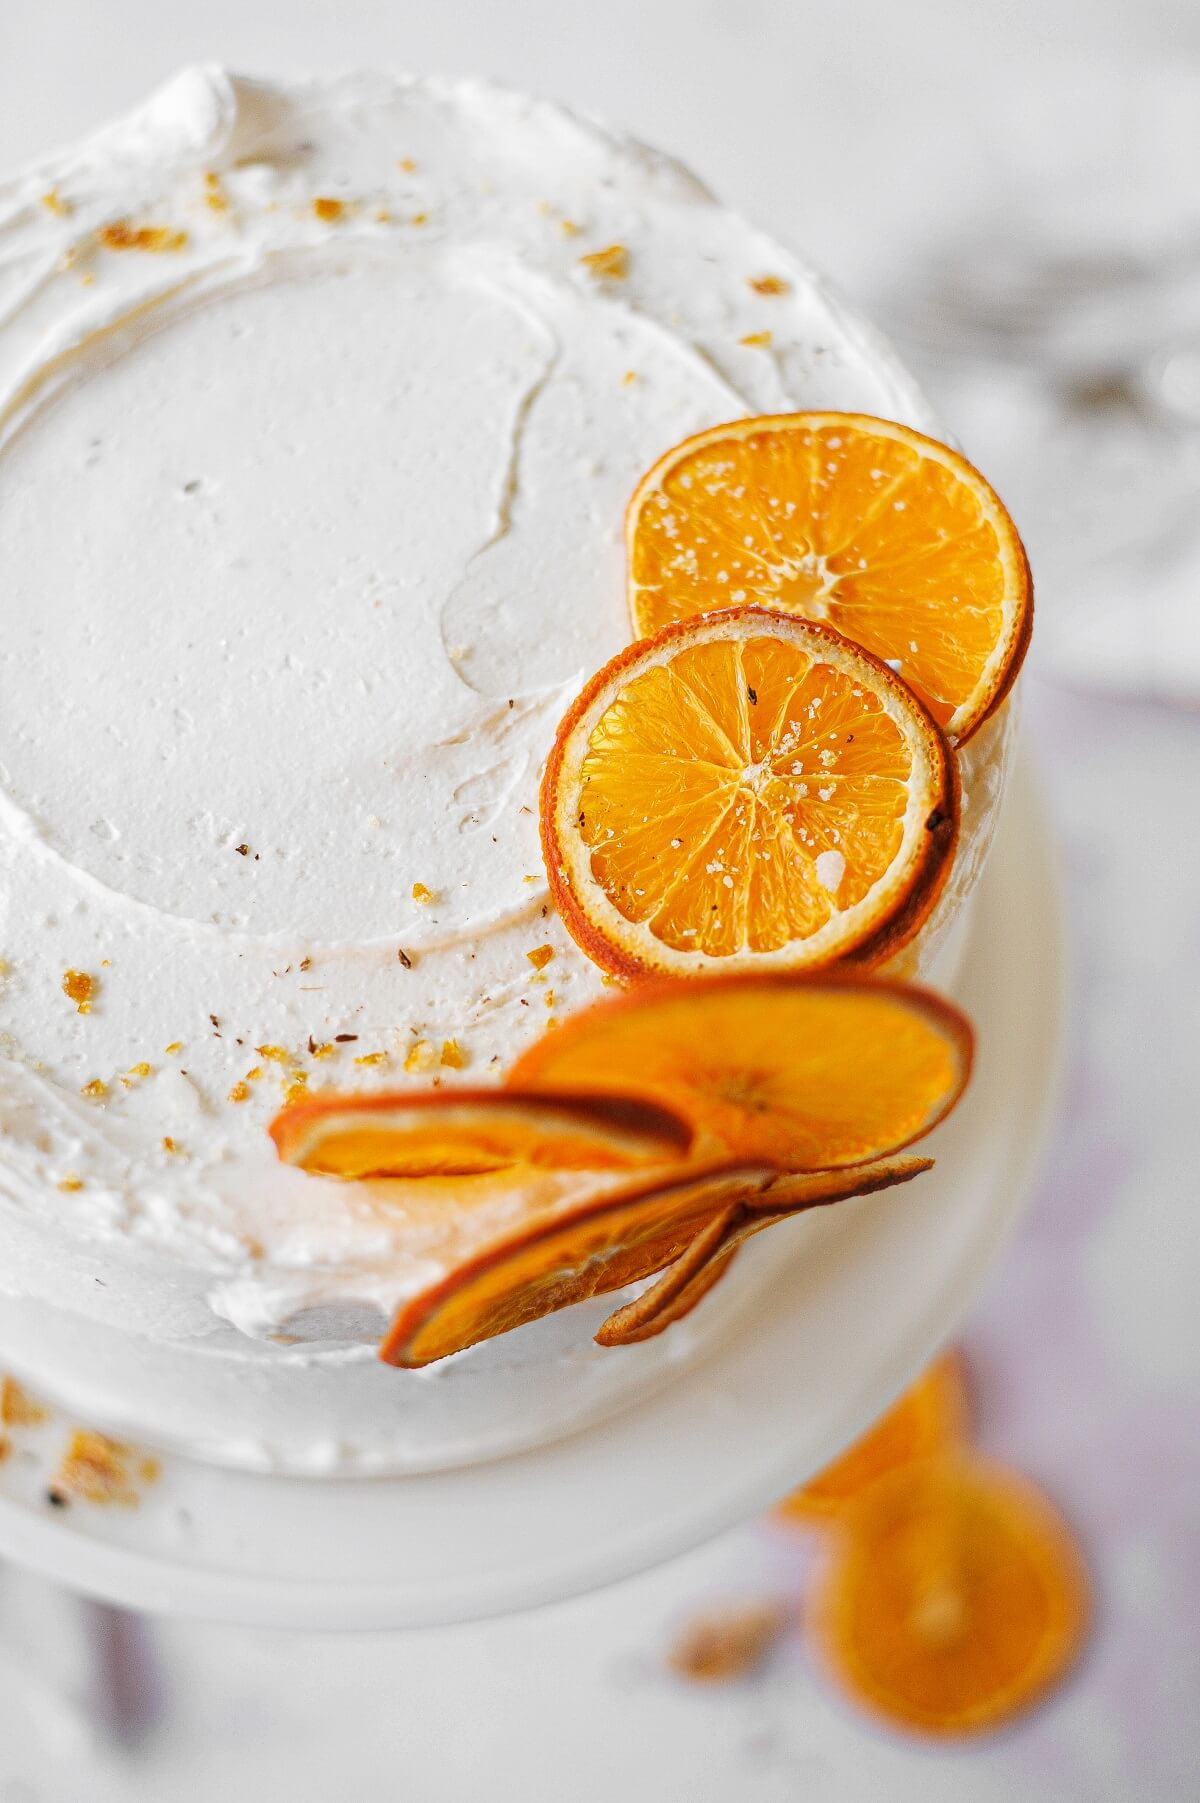 An orange cake, topped with dried orange slices and candied orange peel.